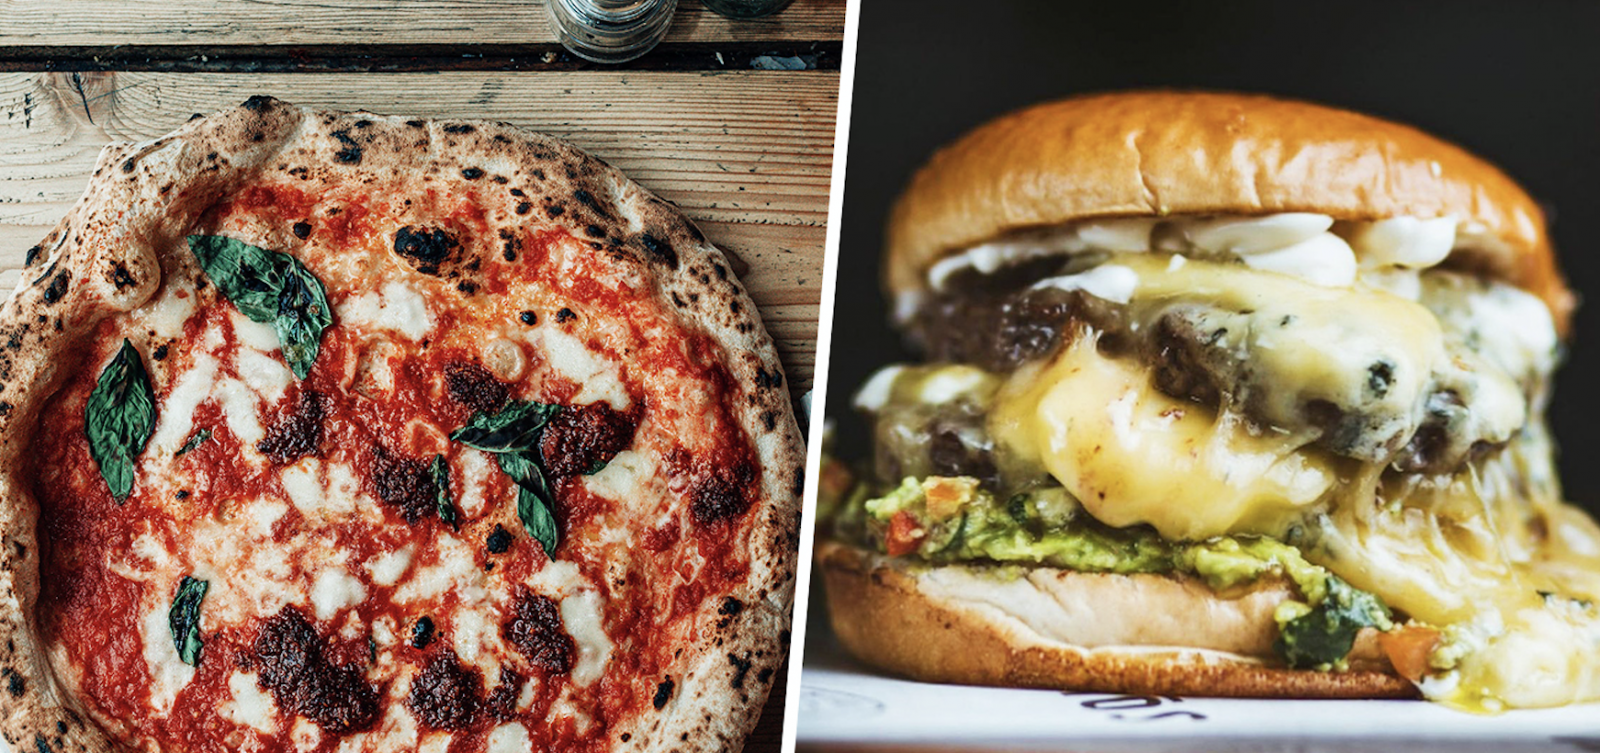 Deliveroo celebrates 6th birthday in Manchester with 6p dishes and £600 giveaway, The Manc